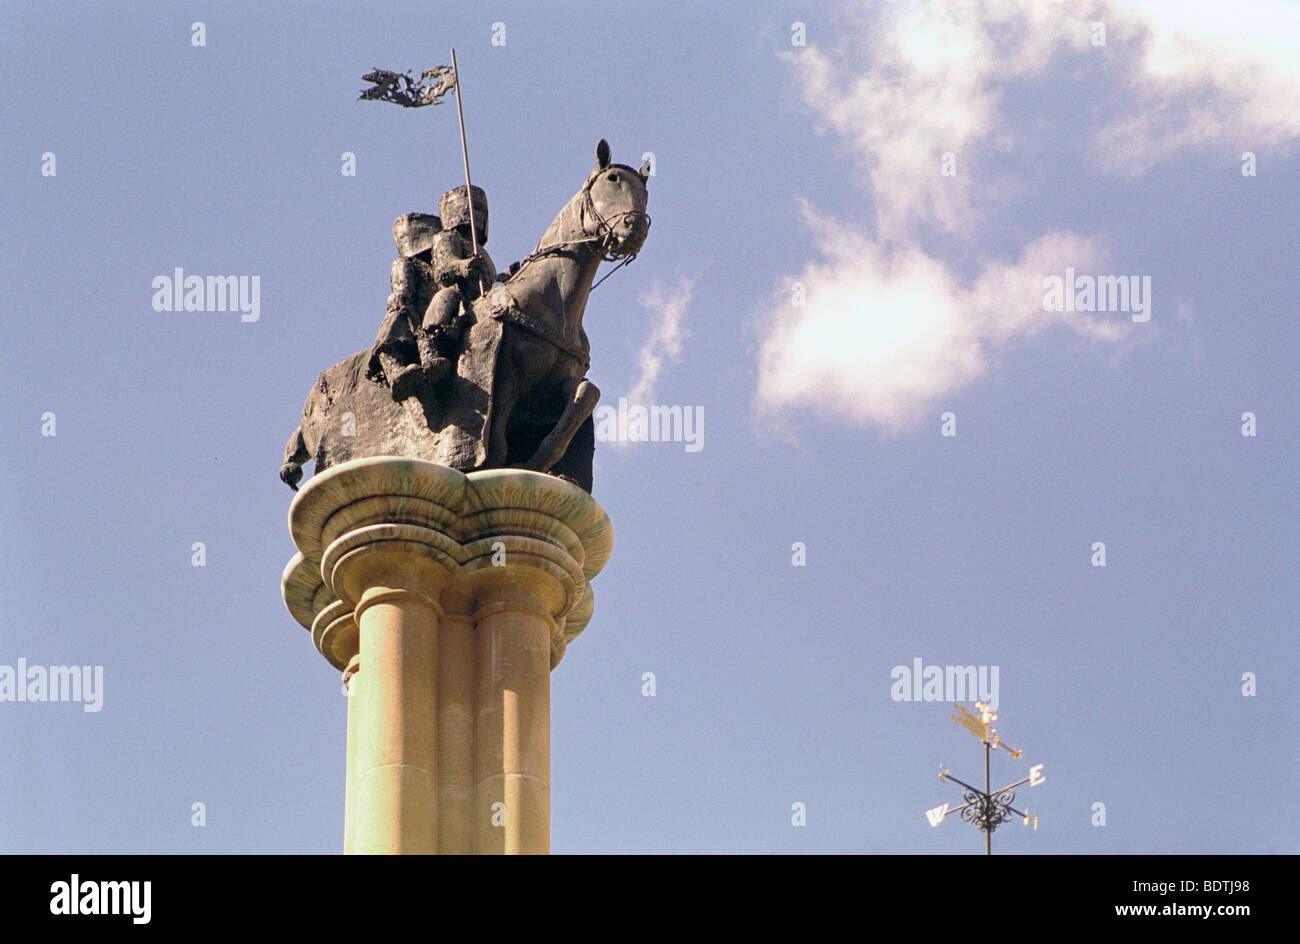 Knights templar, statue, Temple, Middle, London, two knights on horseback with torn flag pennant - Stock Image